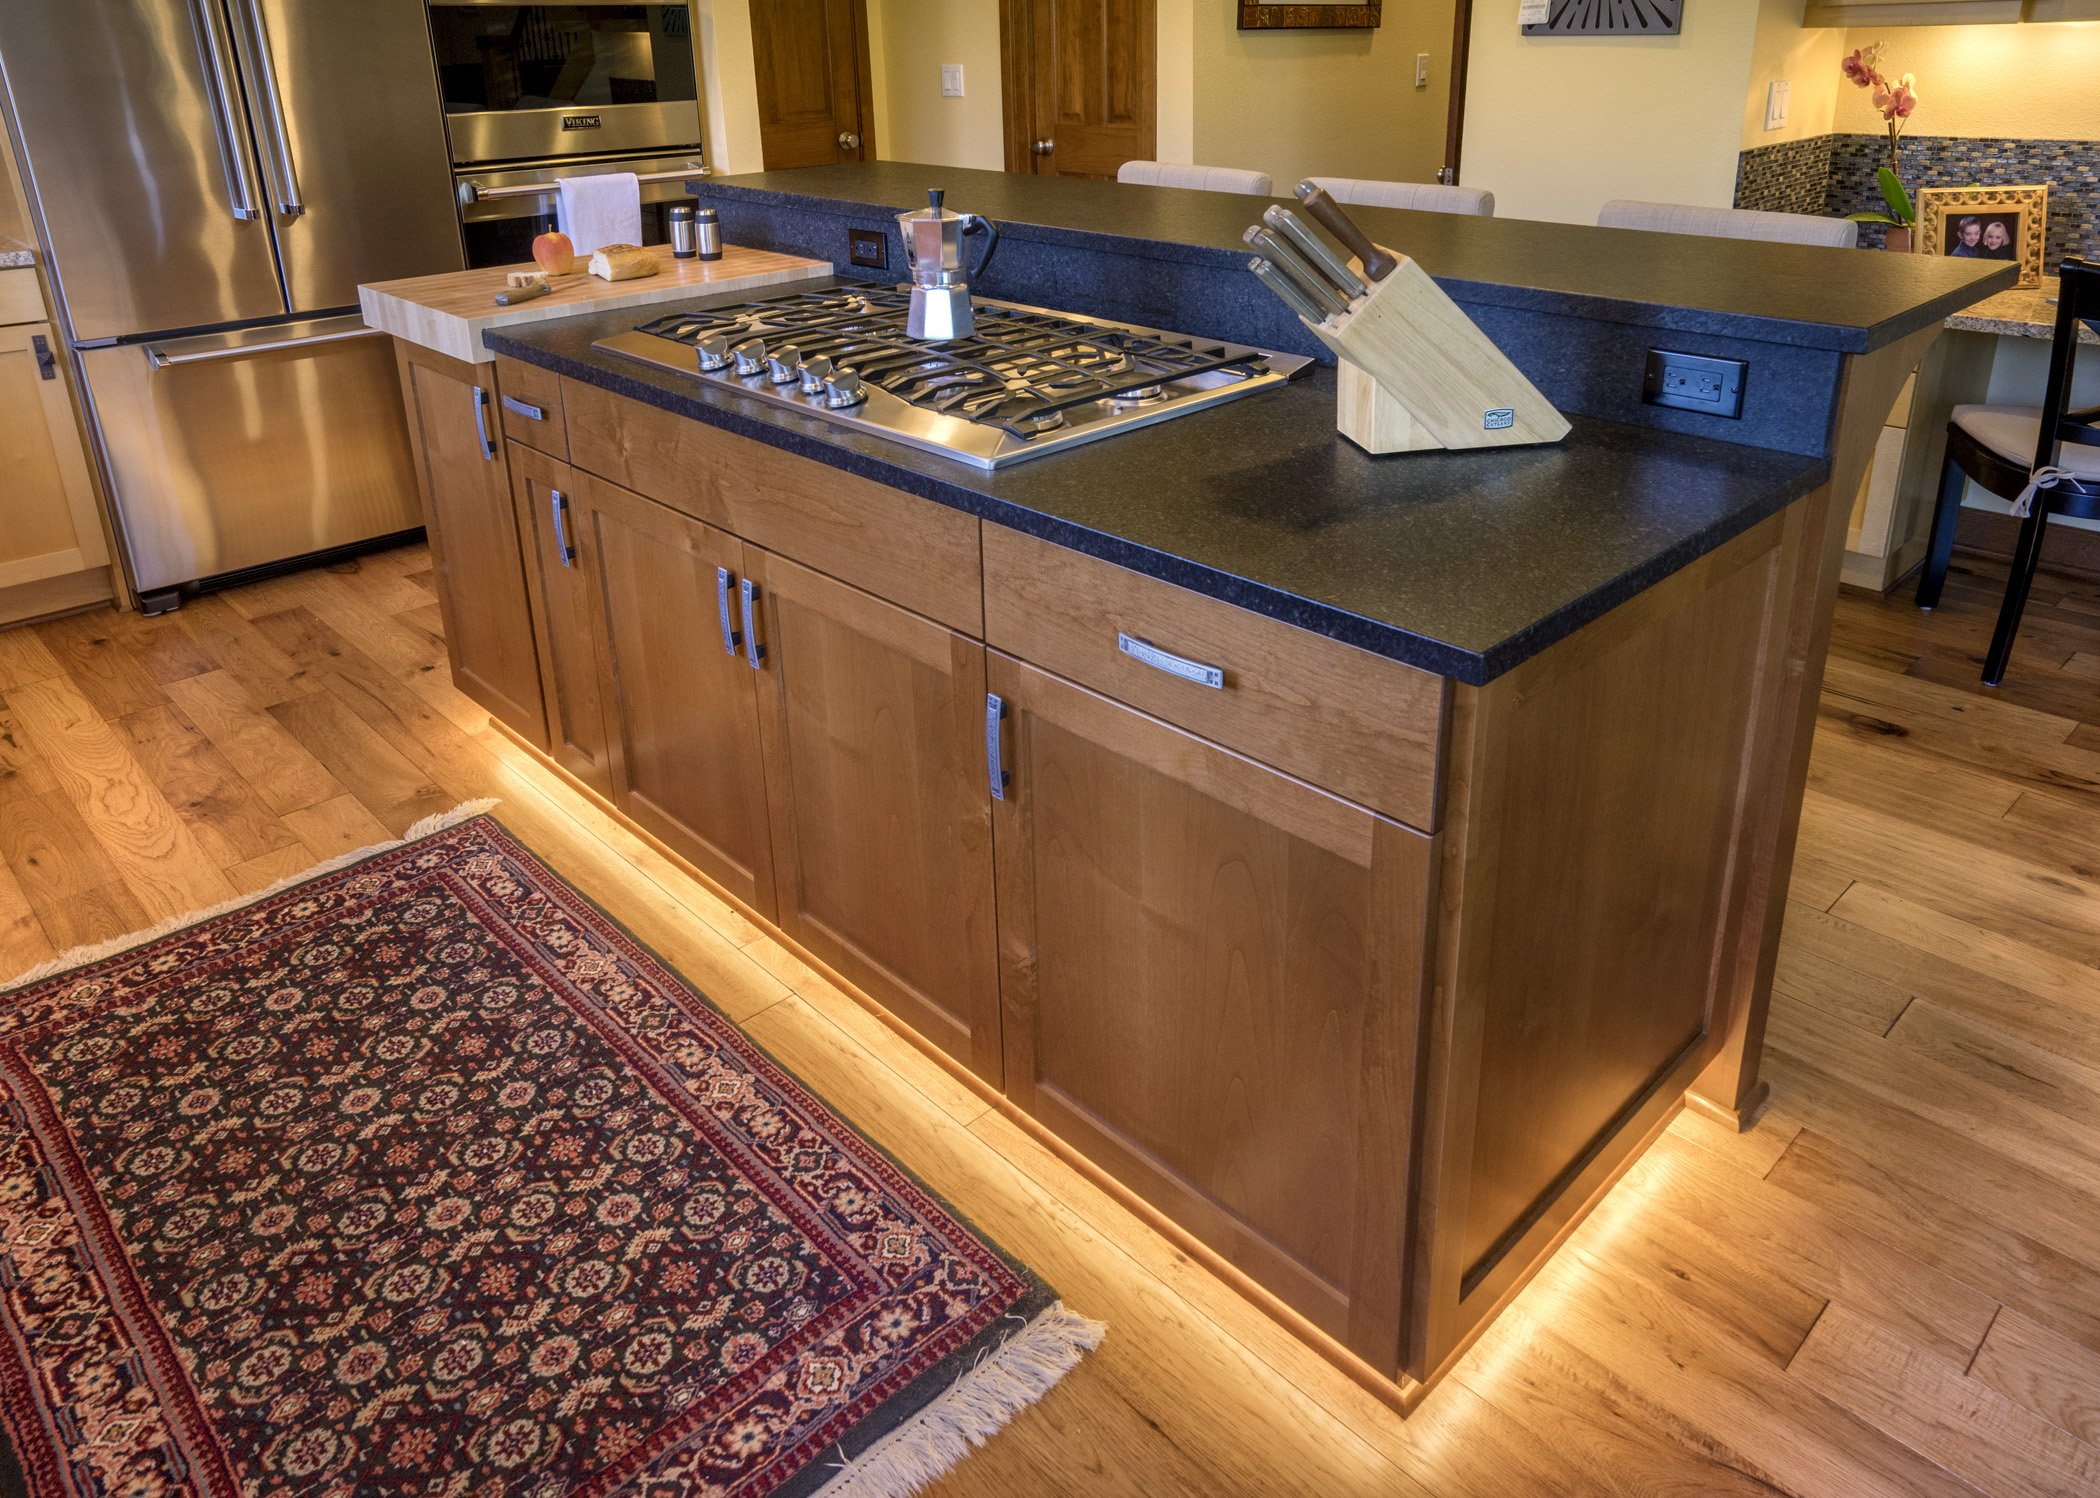 This universal design kitchen features toe kick lighting to help with low light navigation.